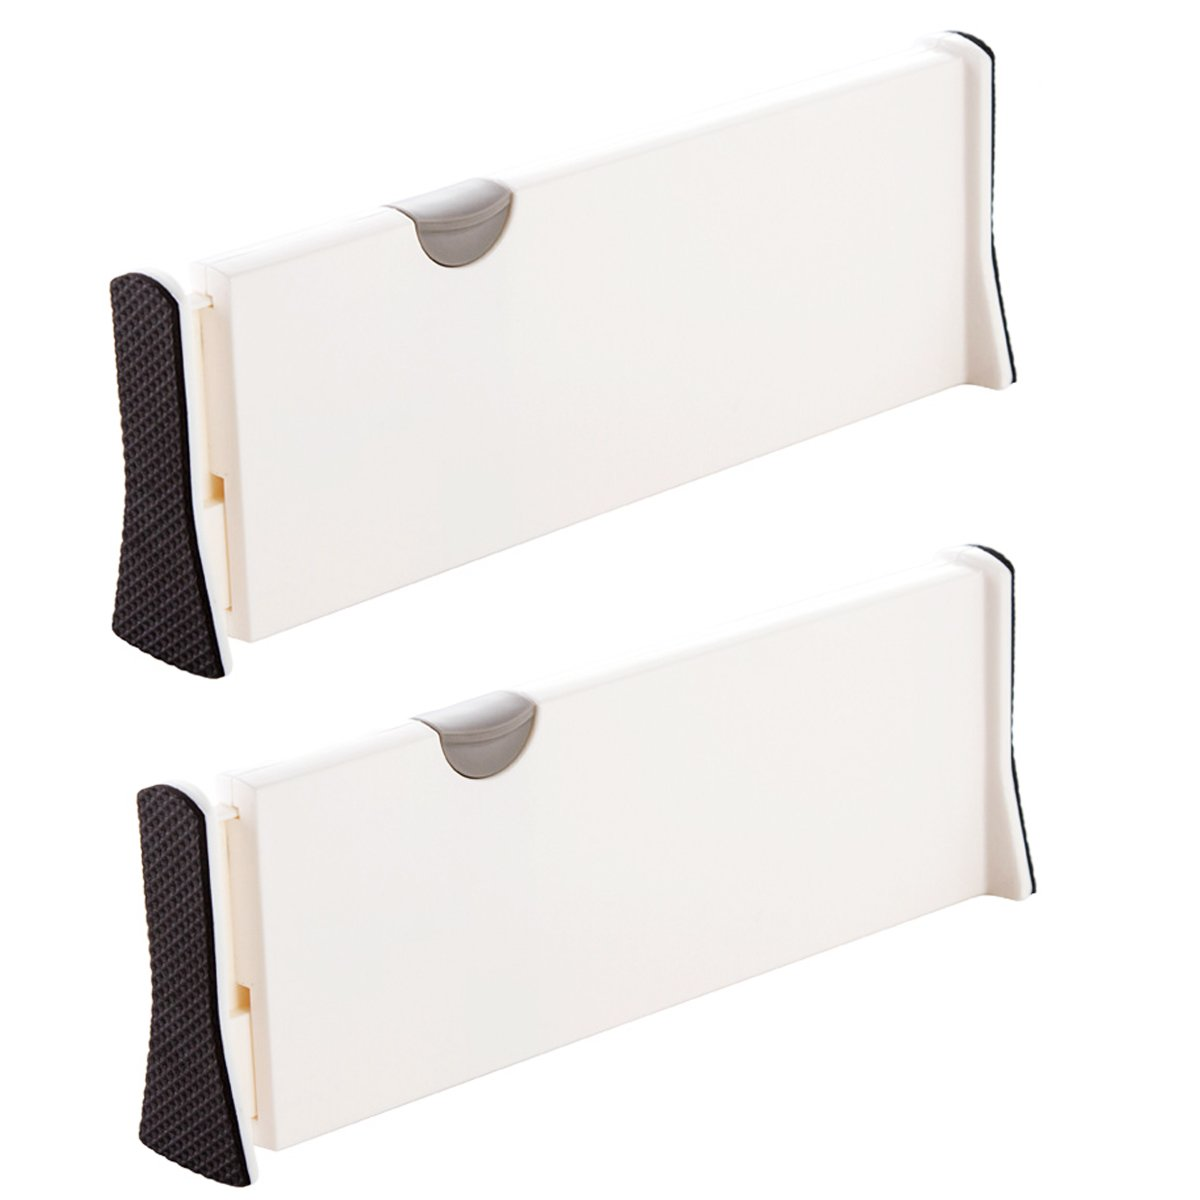 GADENT Adjustable Drawer Divider Large Expandable Plastic Separator Extra-Long Pack of 2, Great for Kitchen, Office and Dresser 2 PCS (14.7''- 21'')